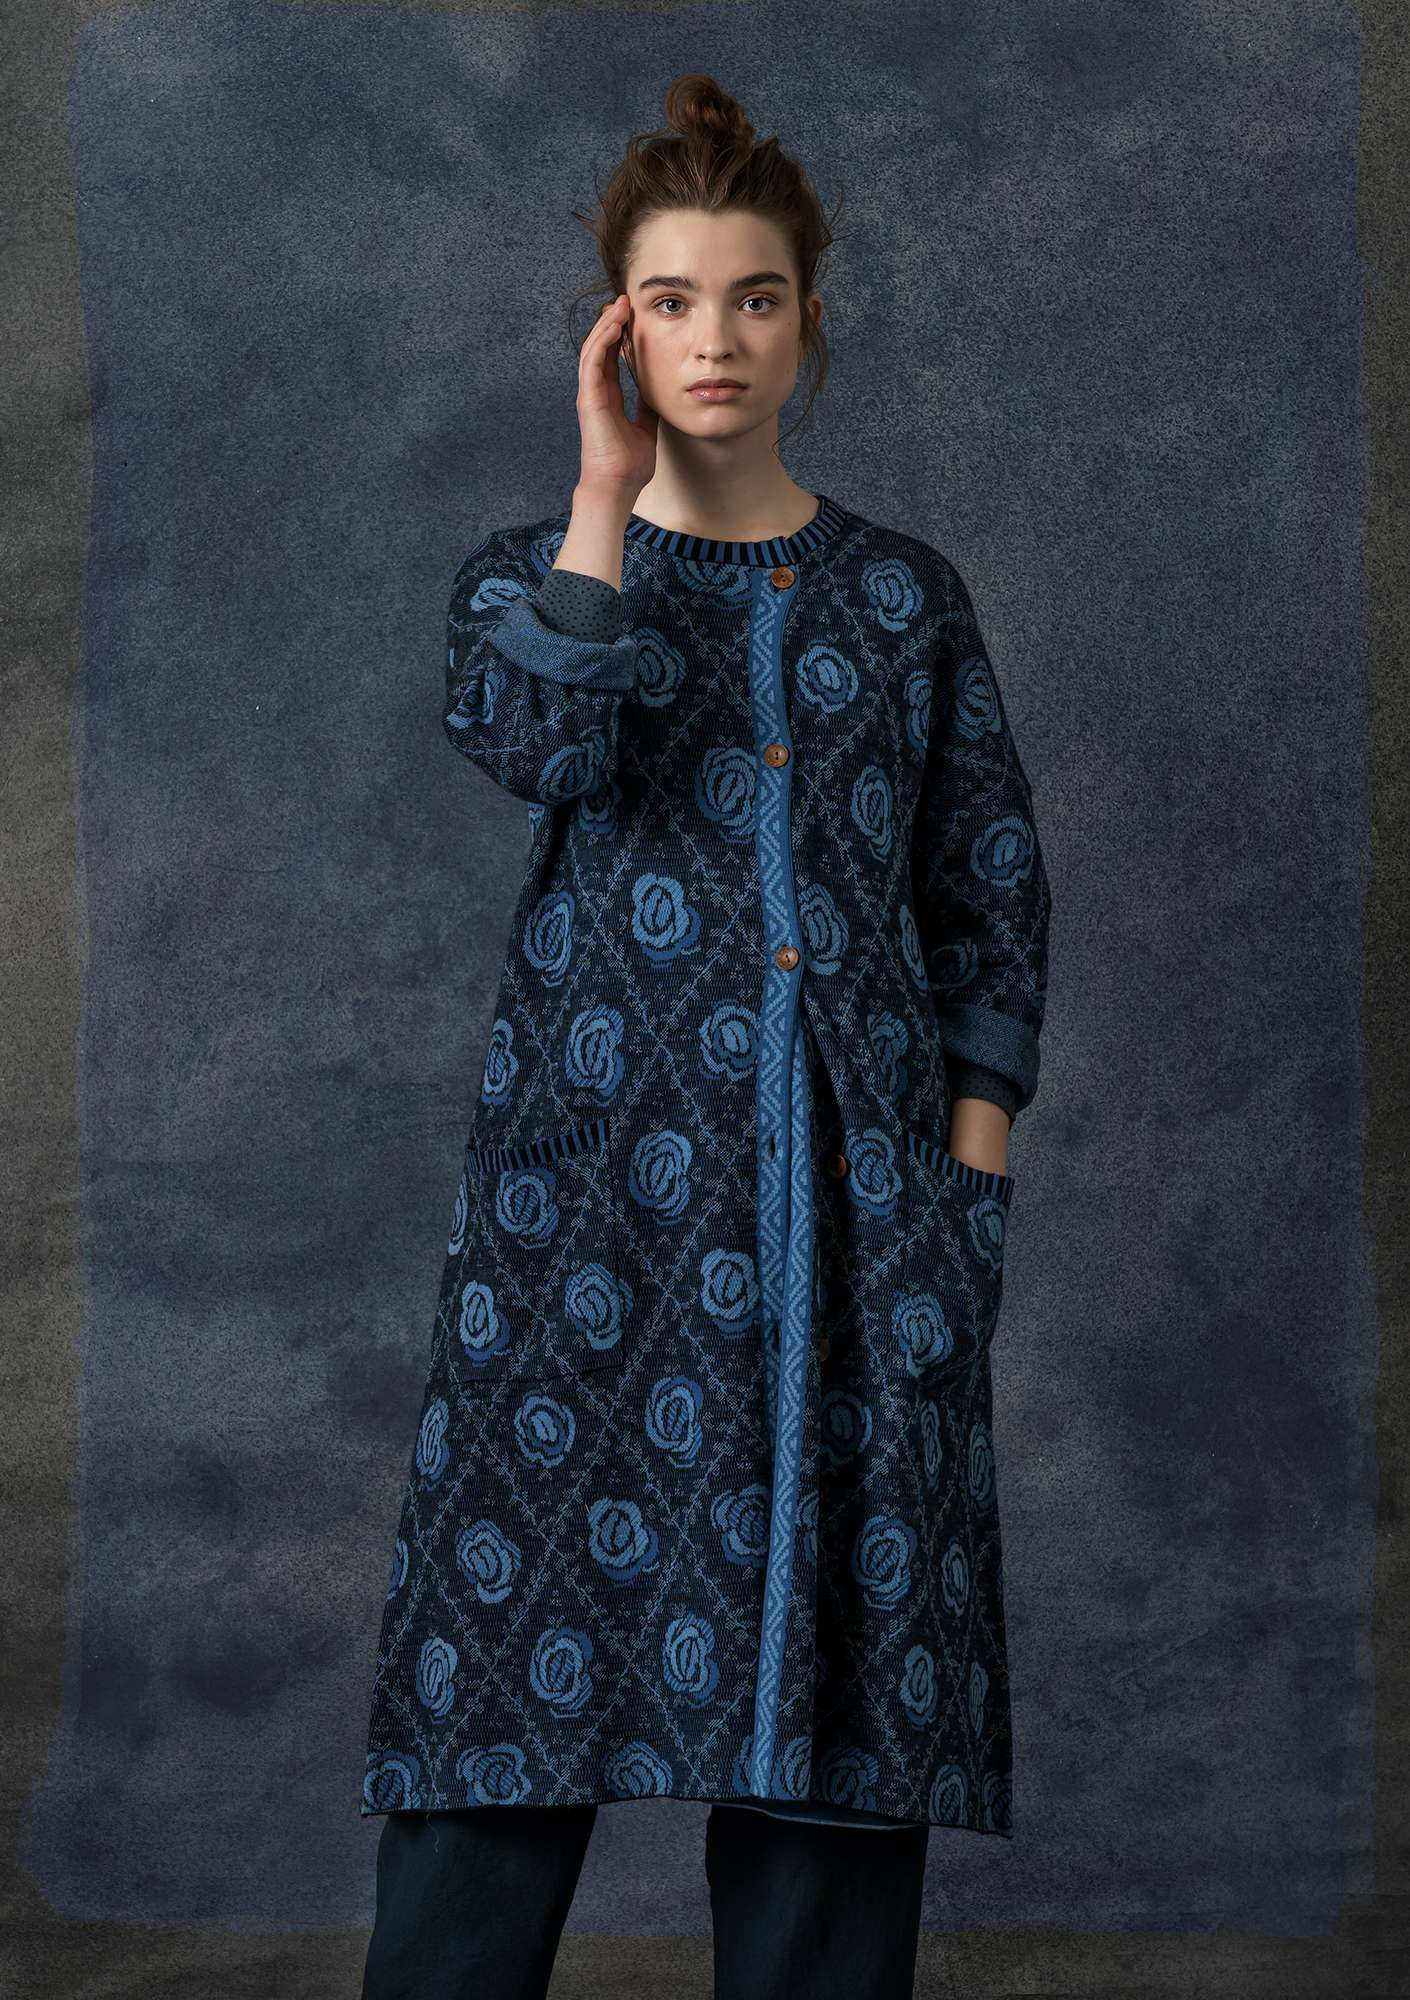 Stunning jacquard knit coat with a brocade inspired rose